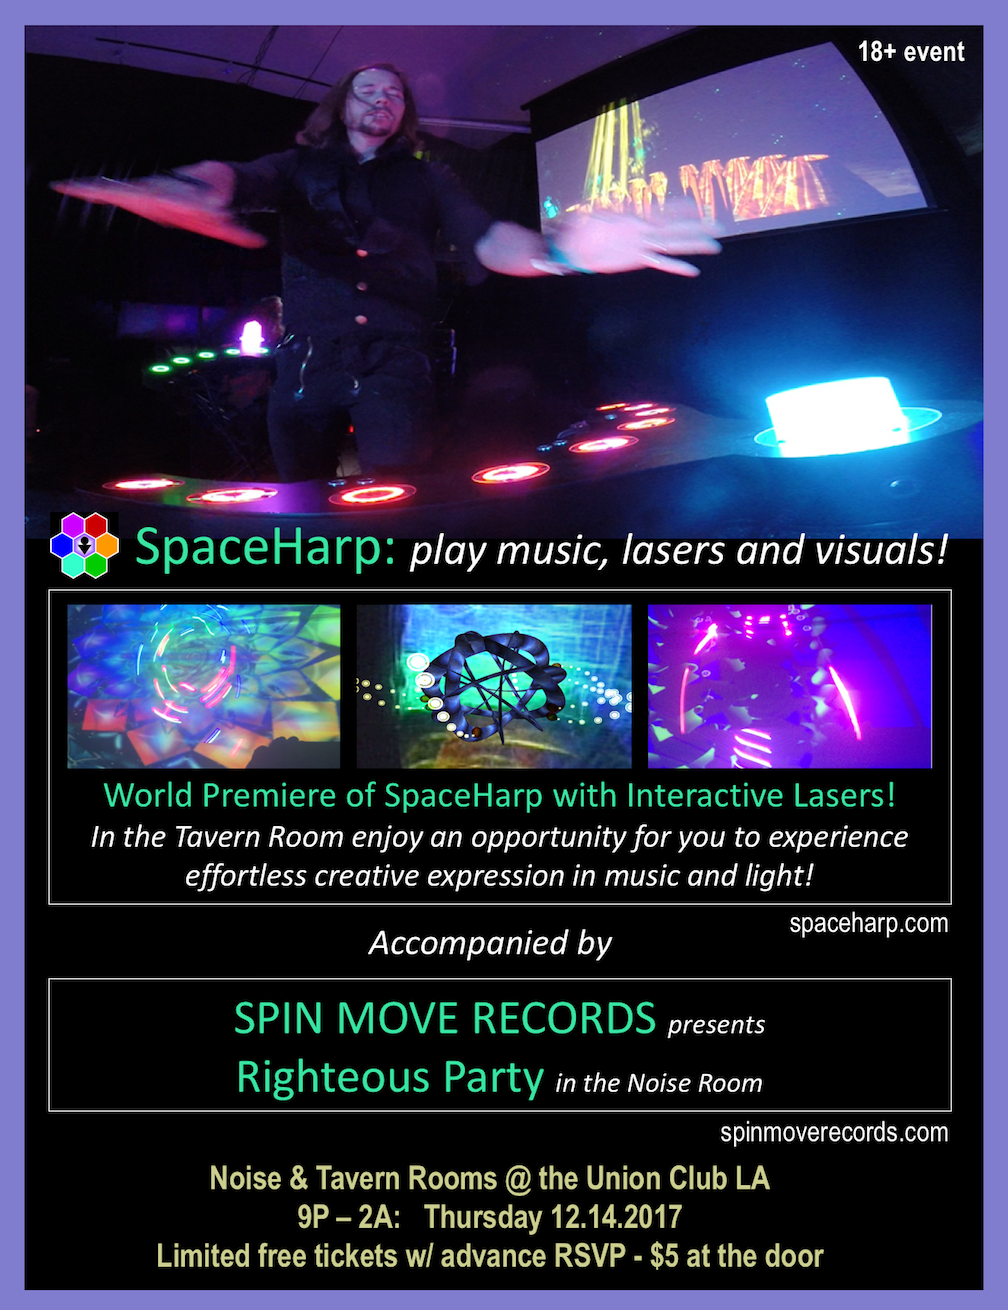 spaceharp_union_tall_144_12-5-17b.png